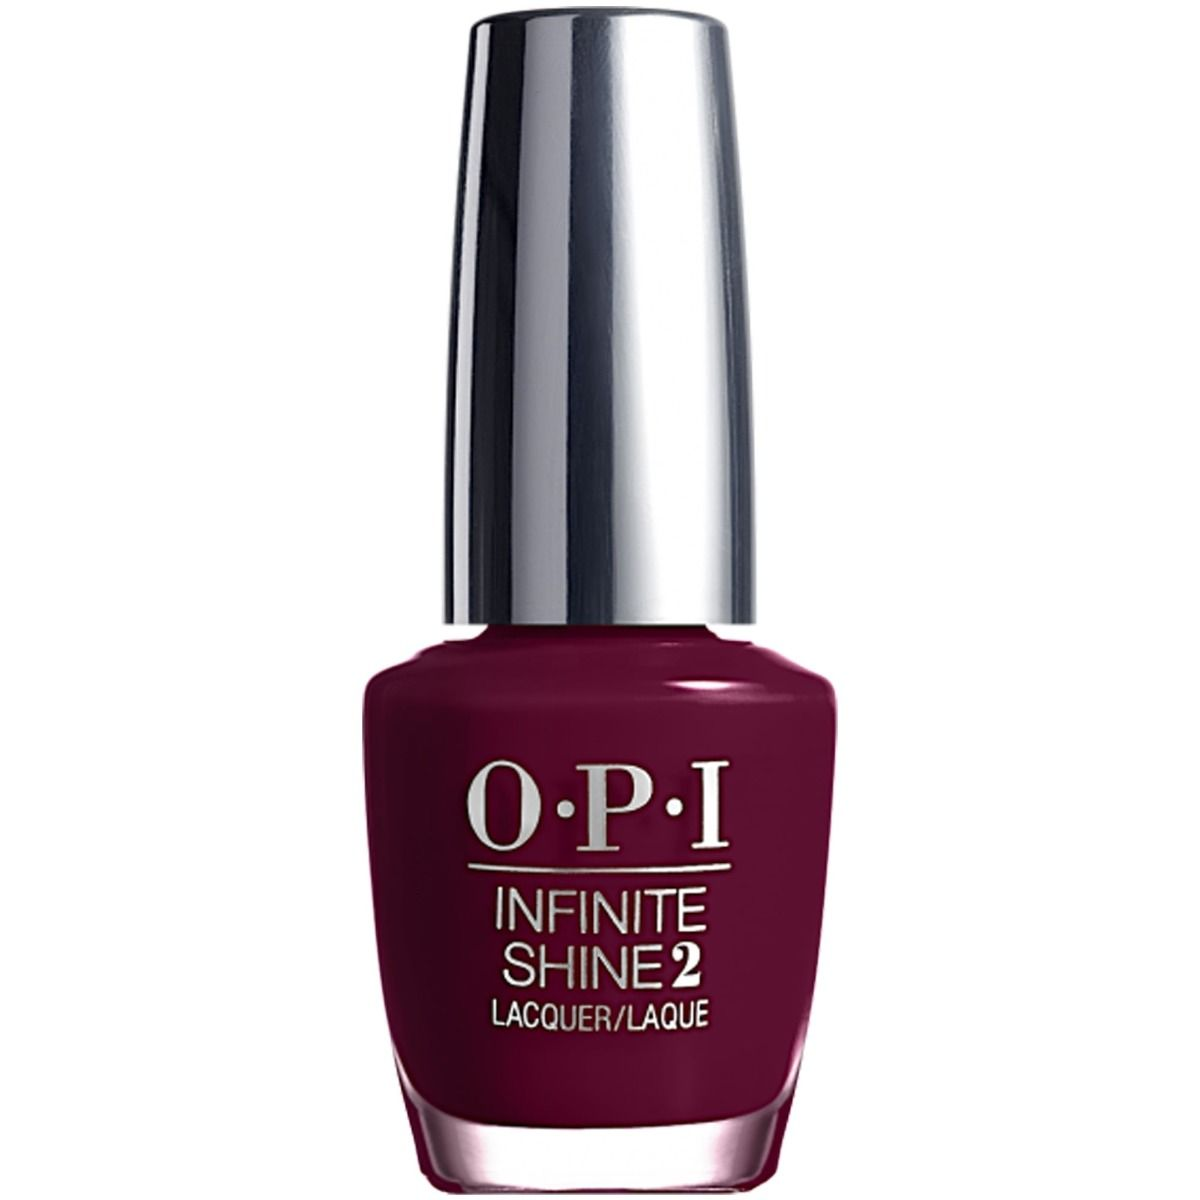 OPI Infinite Shine Can't Be Beet!